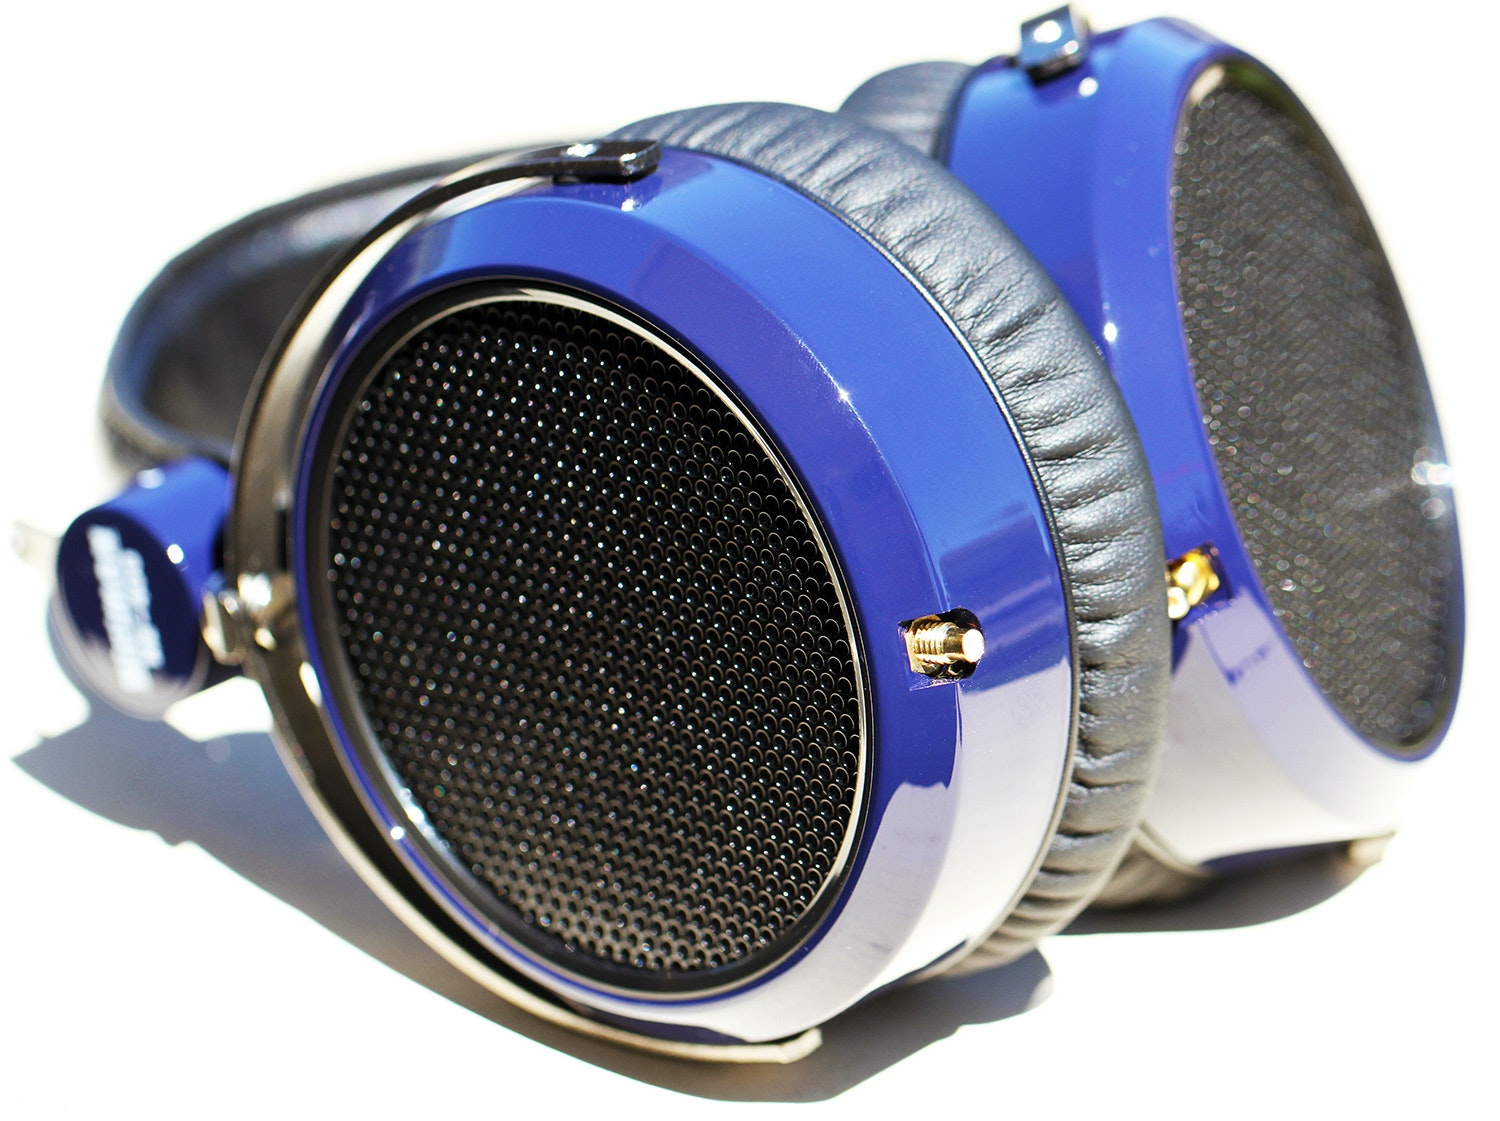 HiFiMan HE-400 Audiophile Headphones